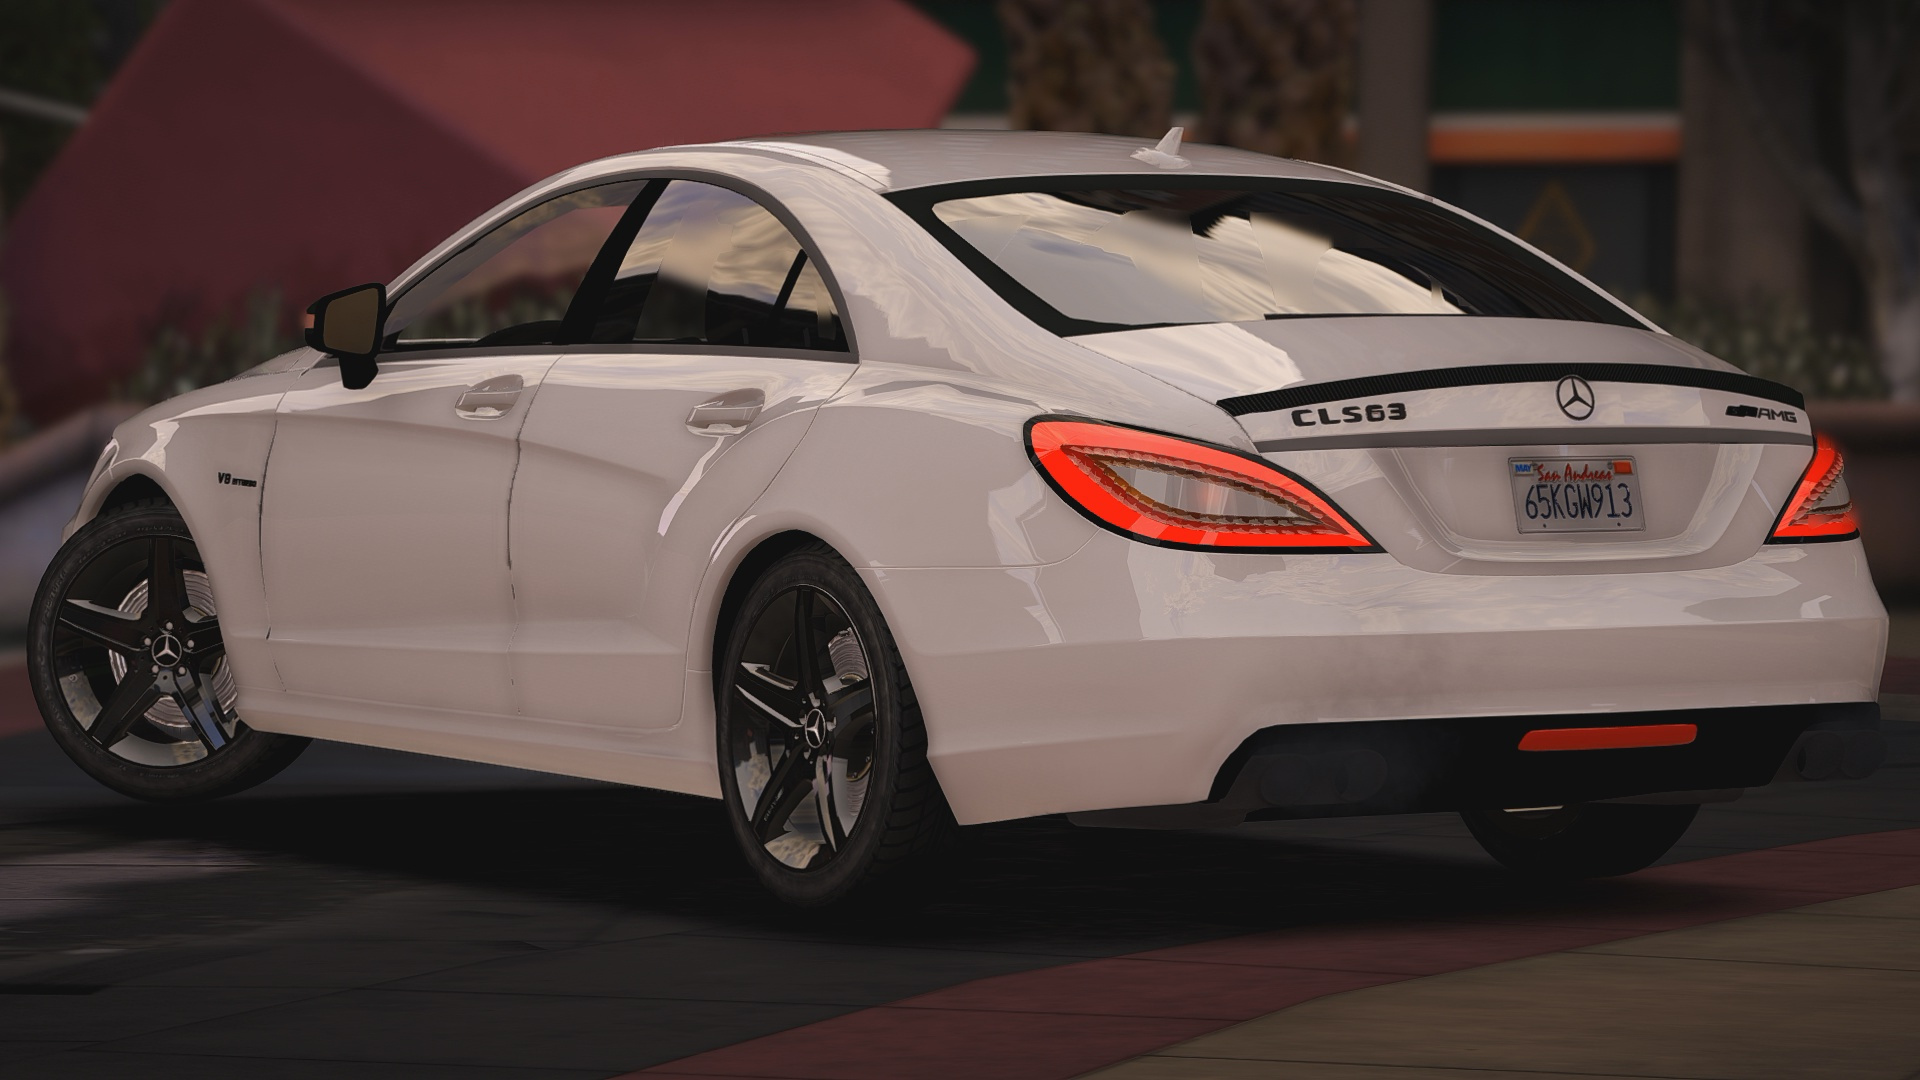 Mercedes Benz CLS 63 AMG [Replace] GTA5 Mods